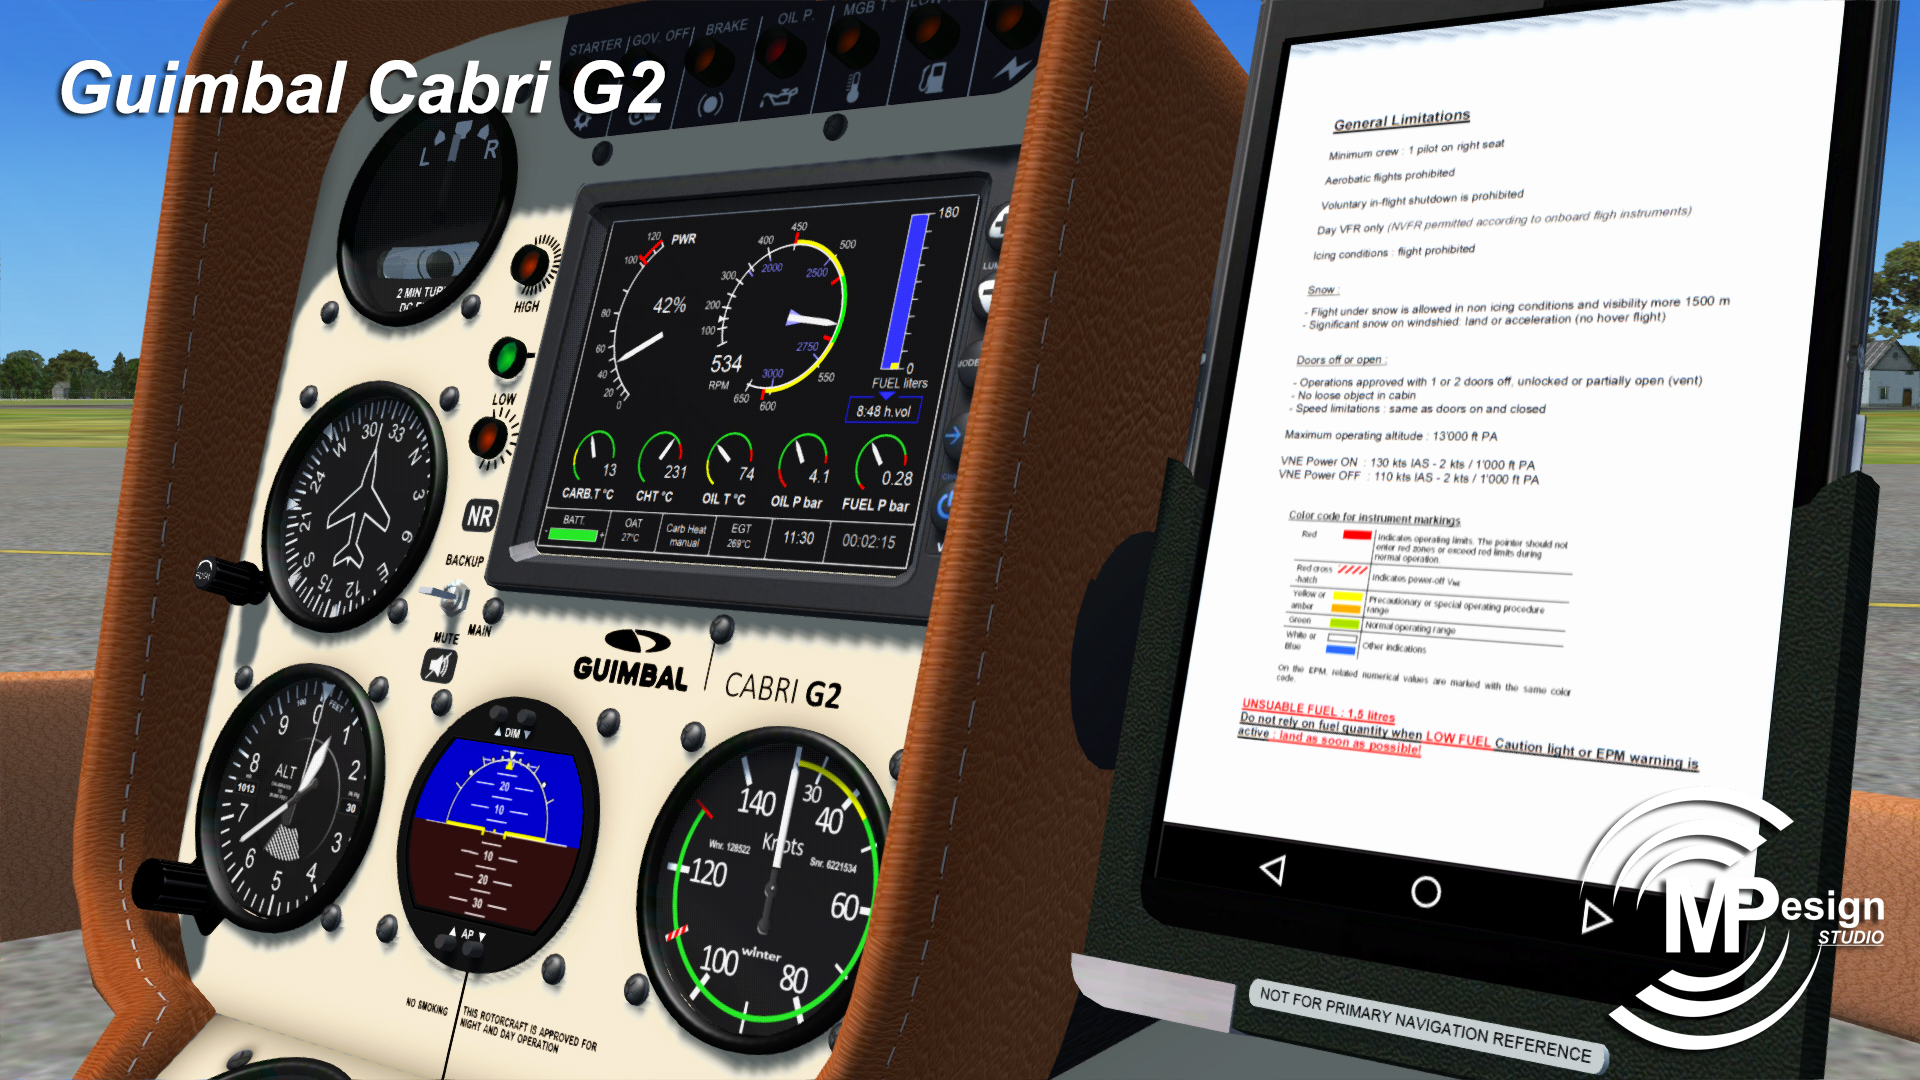 MP DESIGN STUDIO - GUIMBAL CABRI G2 FSX P3D